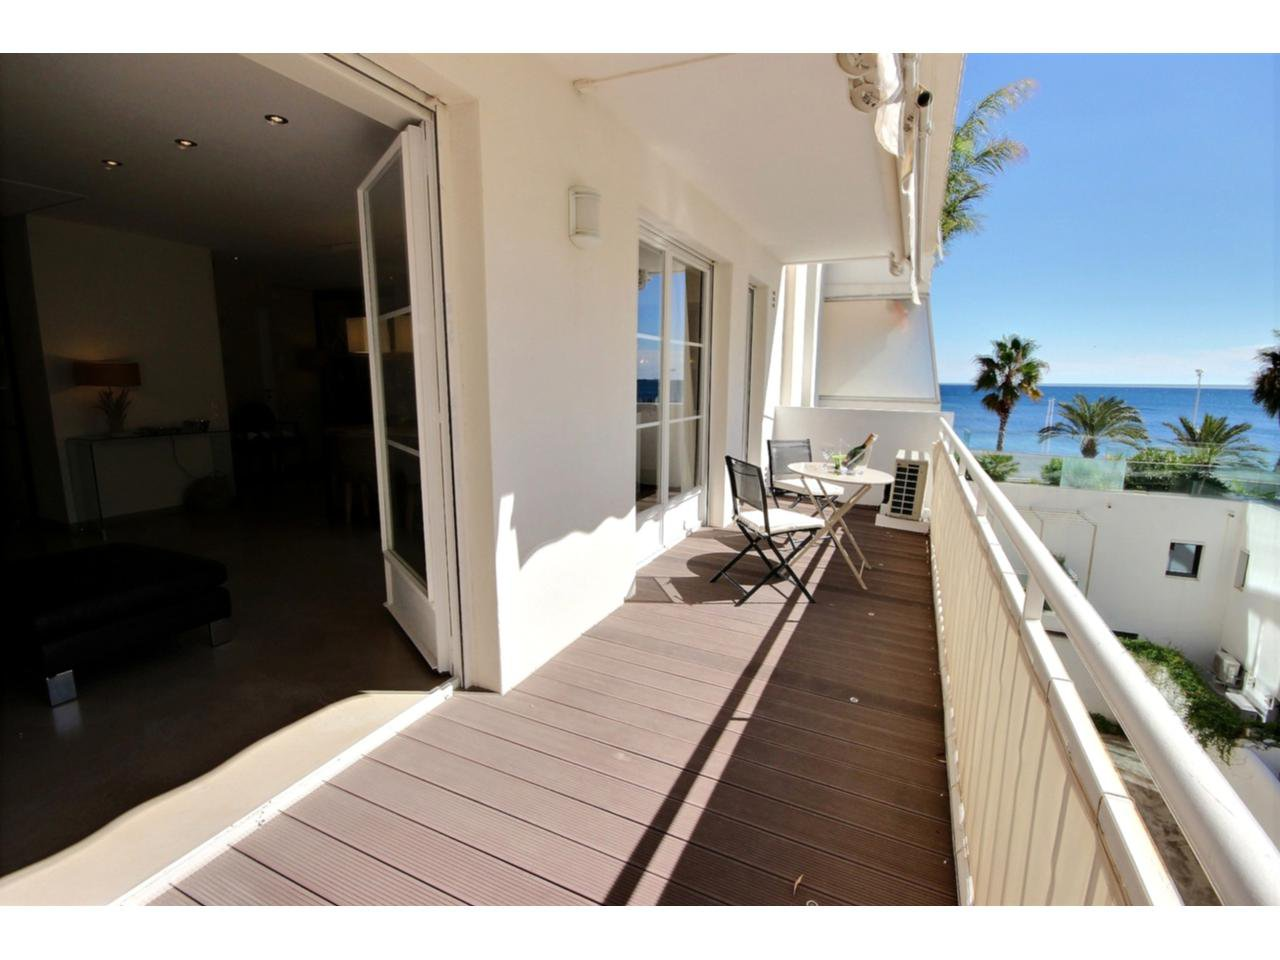 Terrace Cannes Palm Beach property for sale with sea view